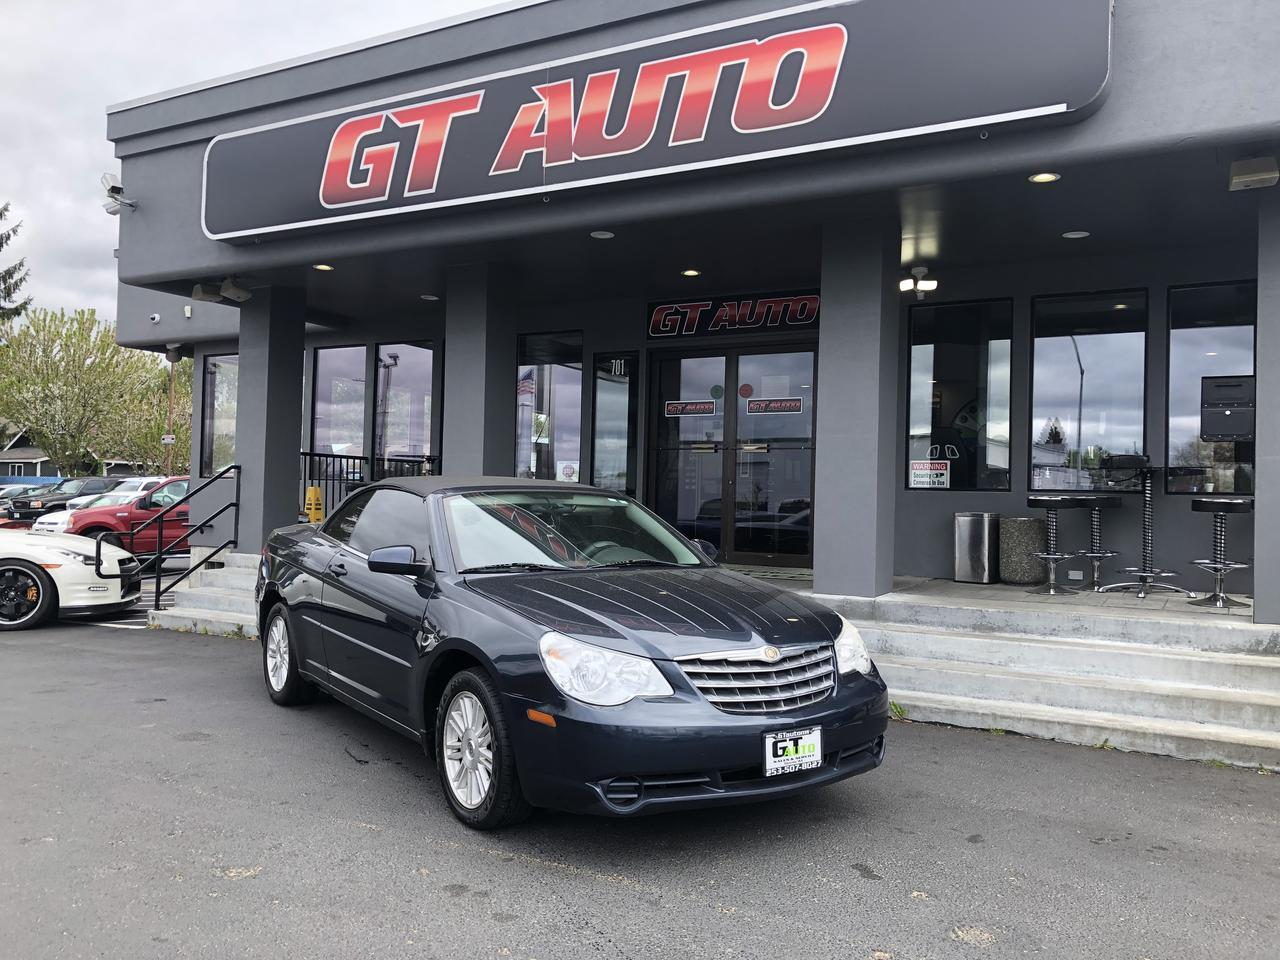 2008 Chrysler Sebring *Touring Convertible Coupe* Puyallup WA